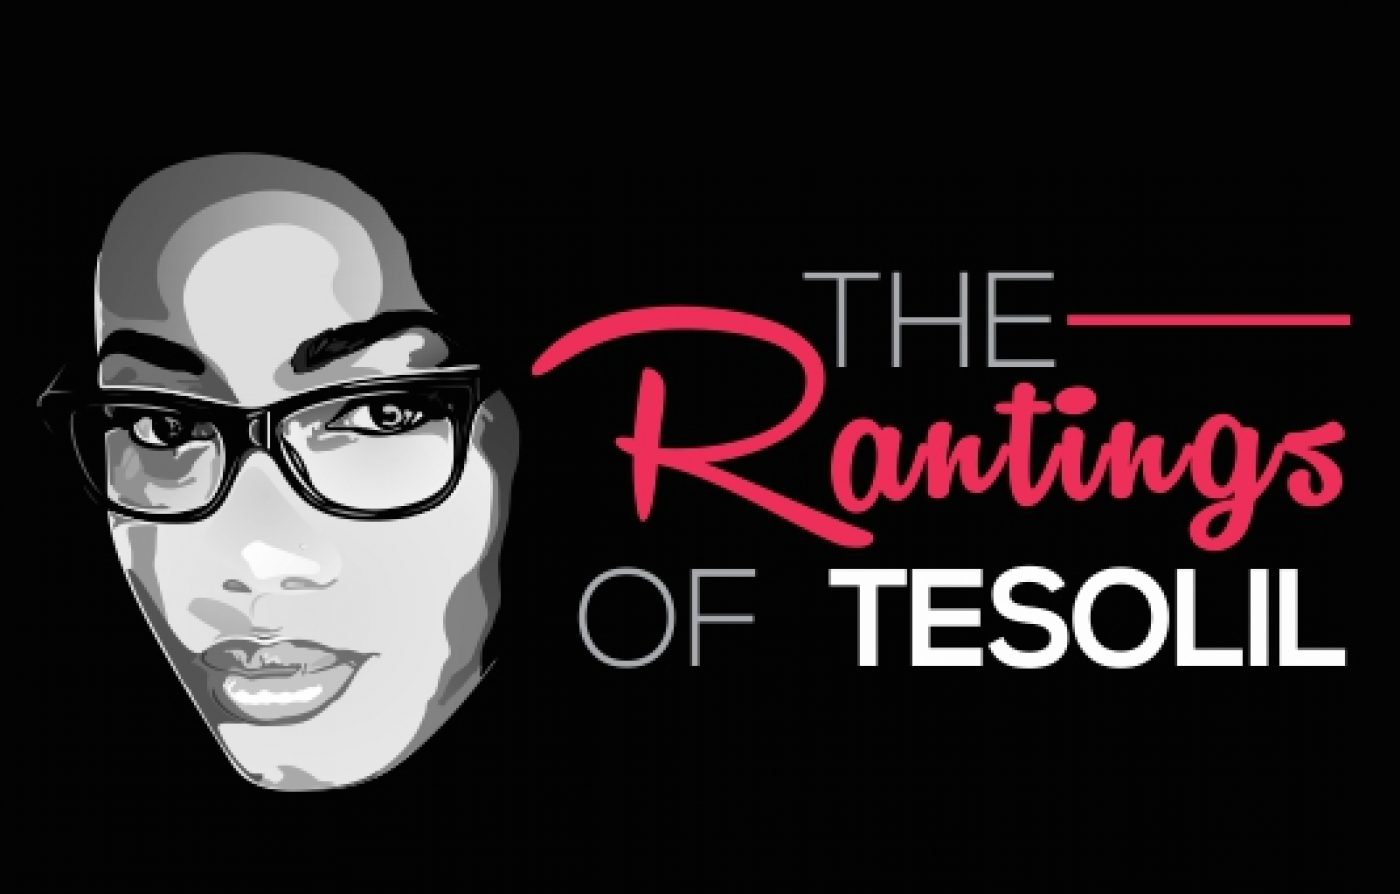 The Rantings of Tesolil